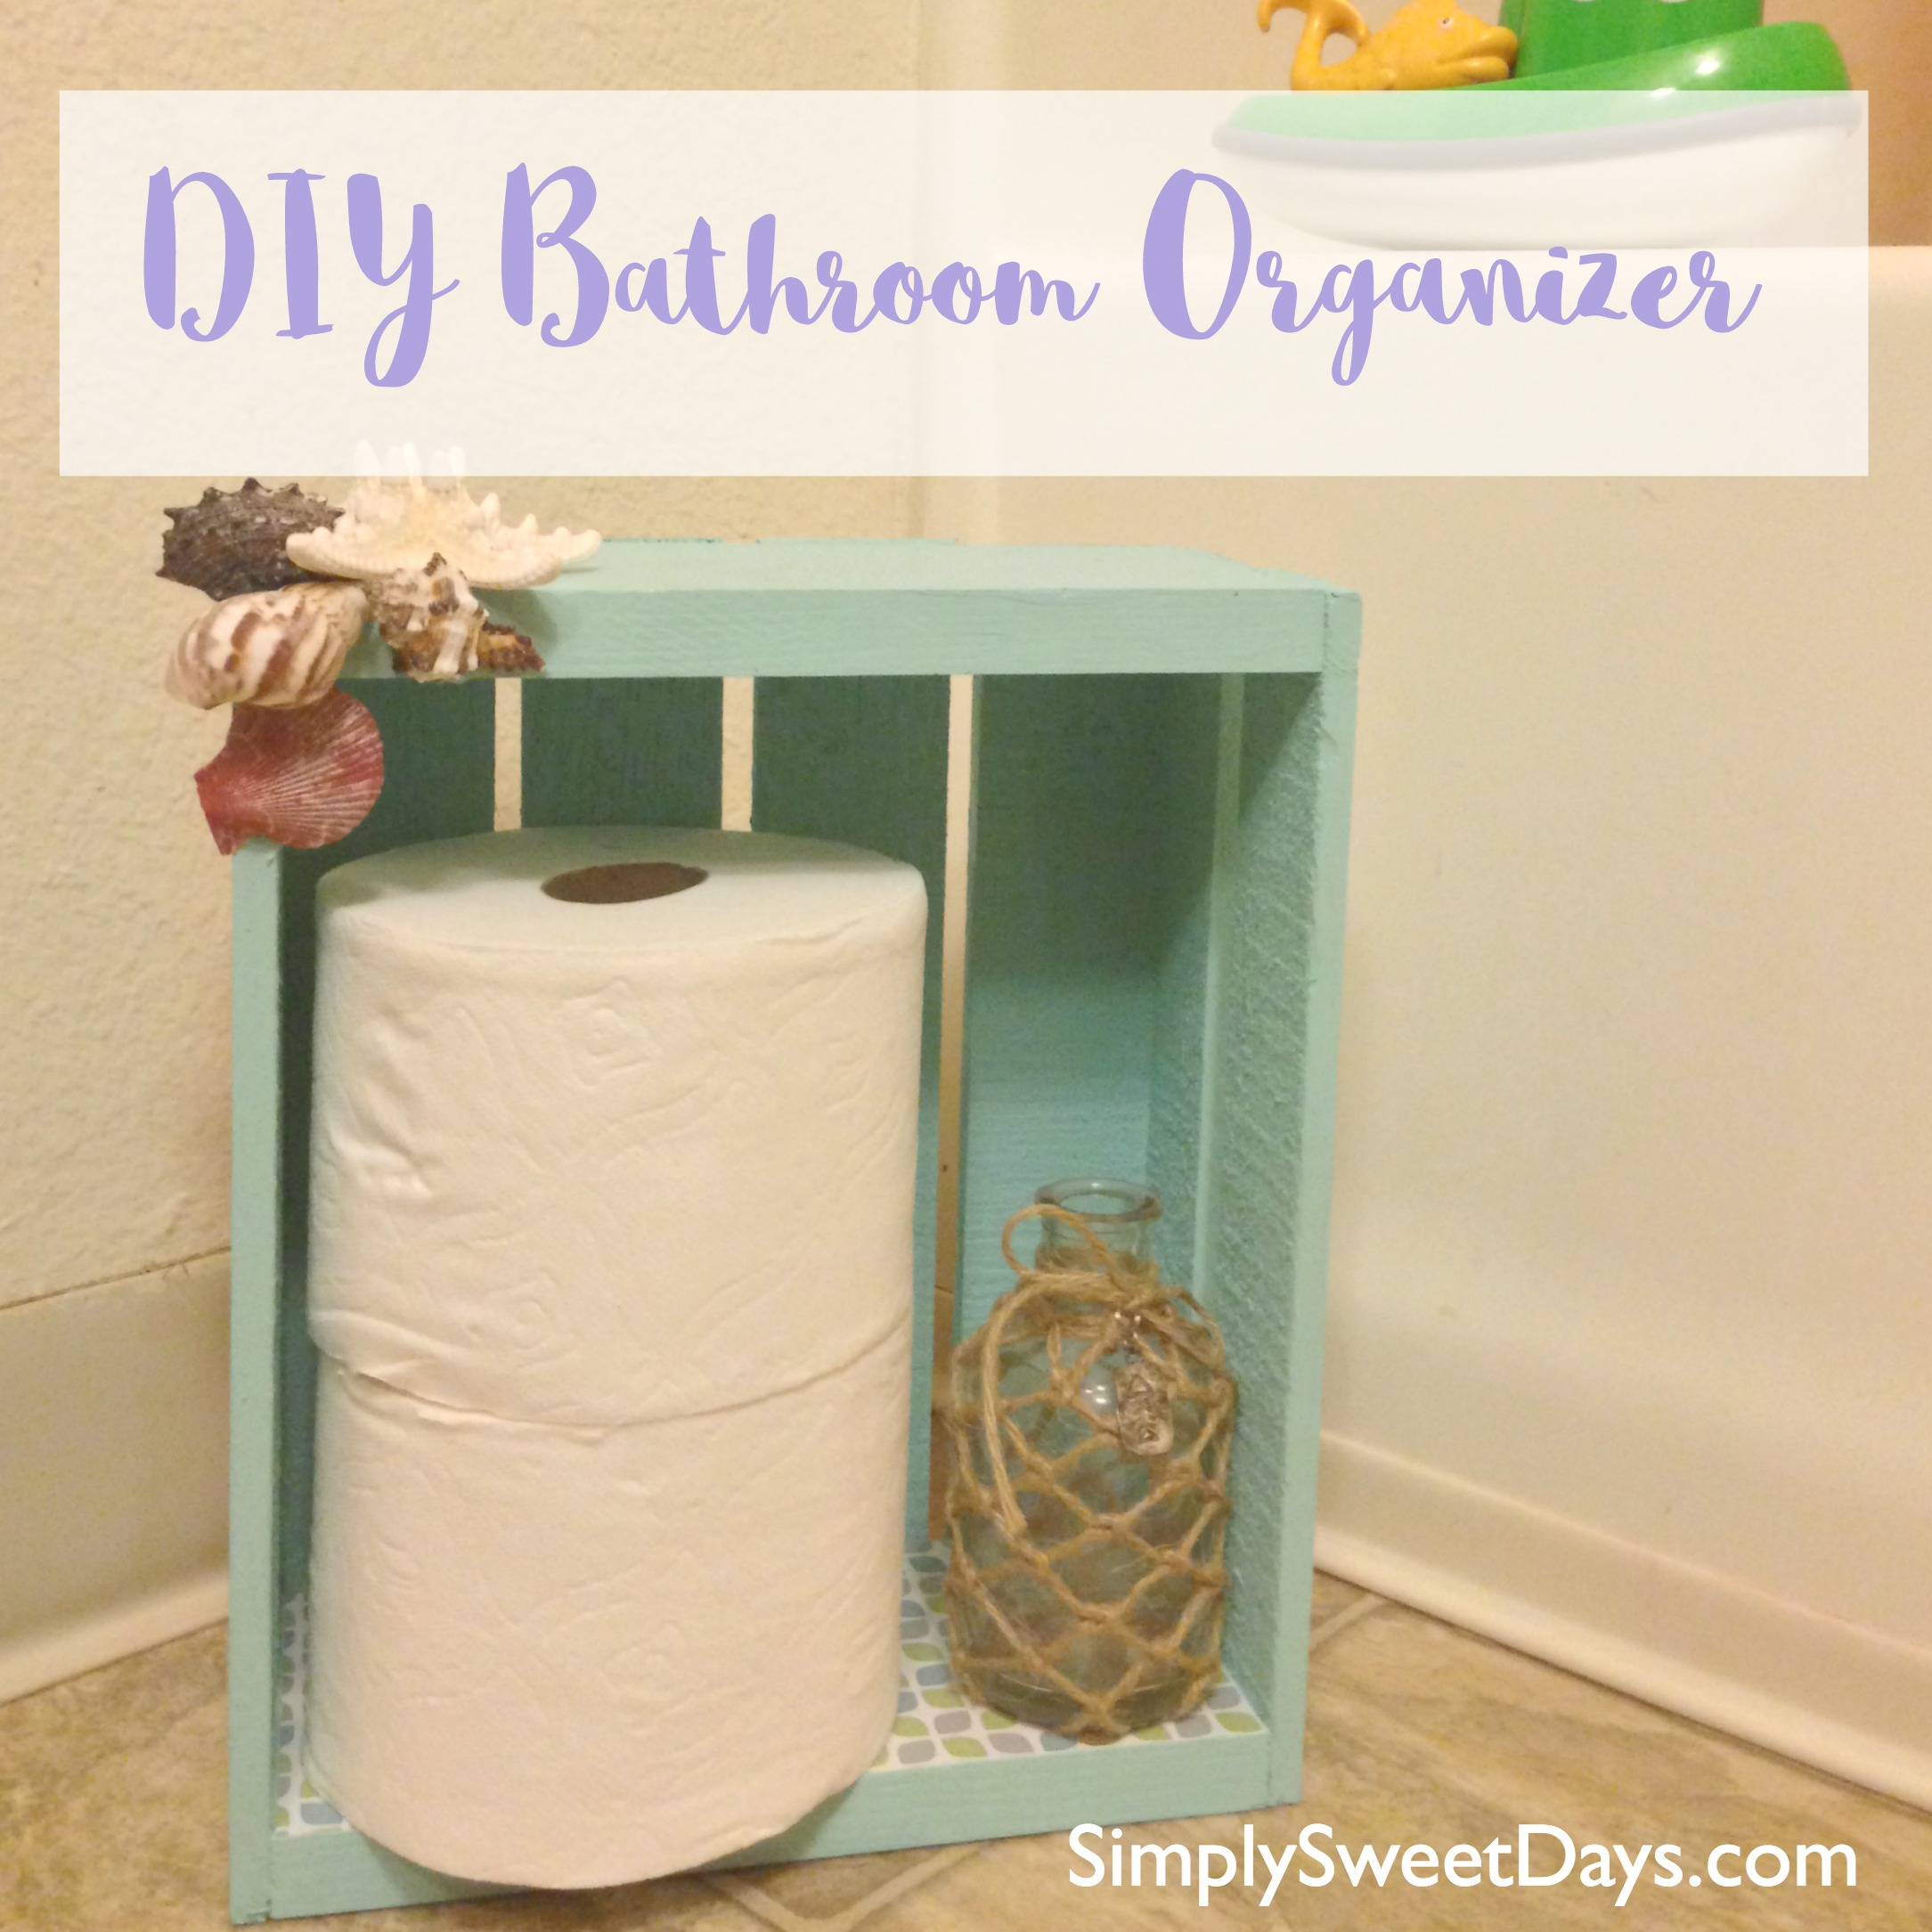 DIY_bathroom_organizer